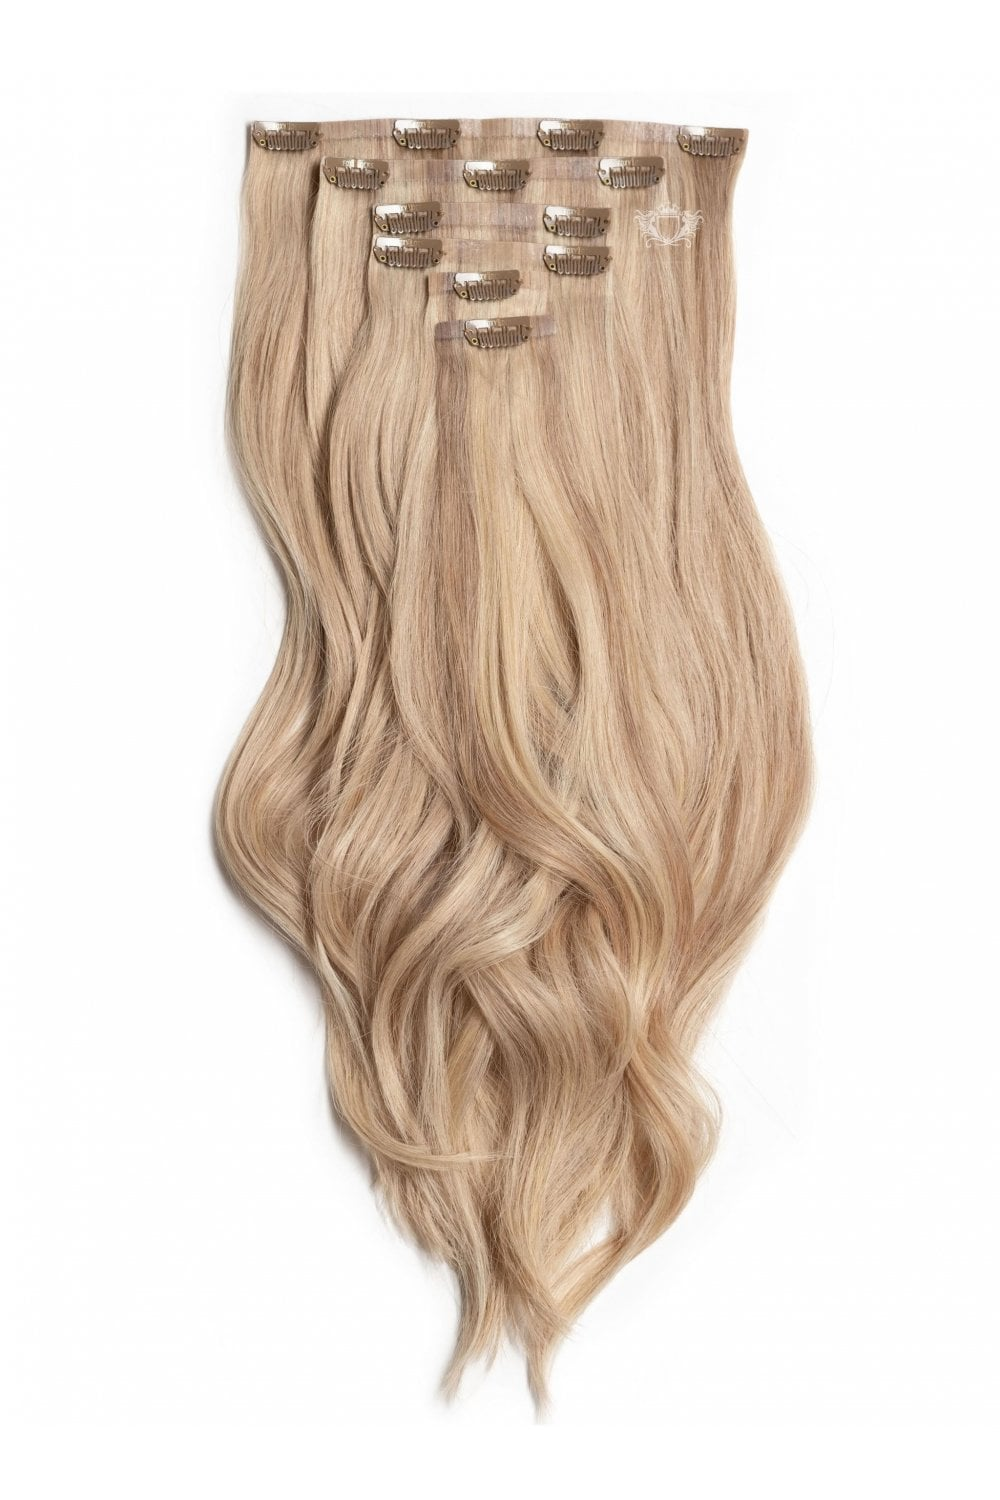 Platinum blonde seamless deluxe 20 clip in human hair extensions latte blonde deluxe 20 seamless clip in human hair extensions 165g pmusecretfo Images